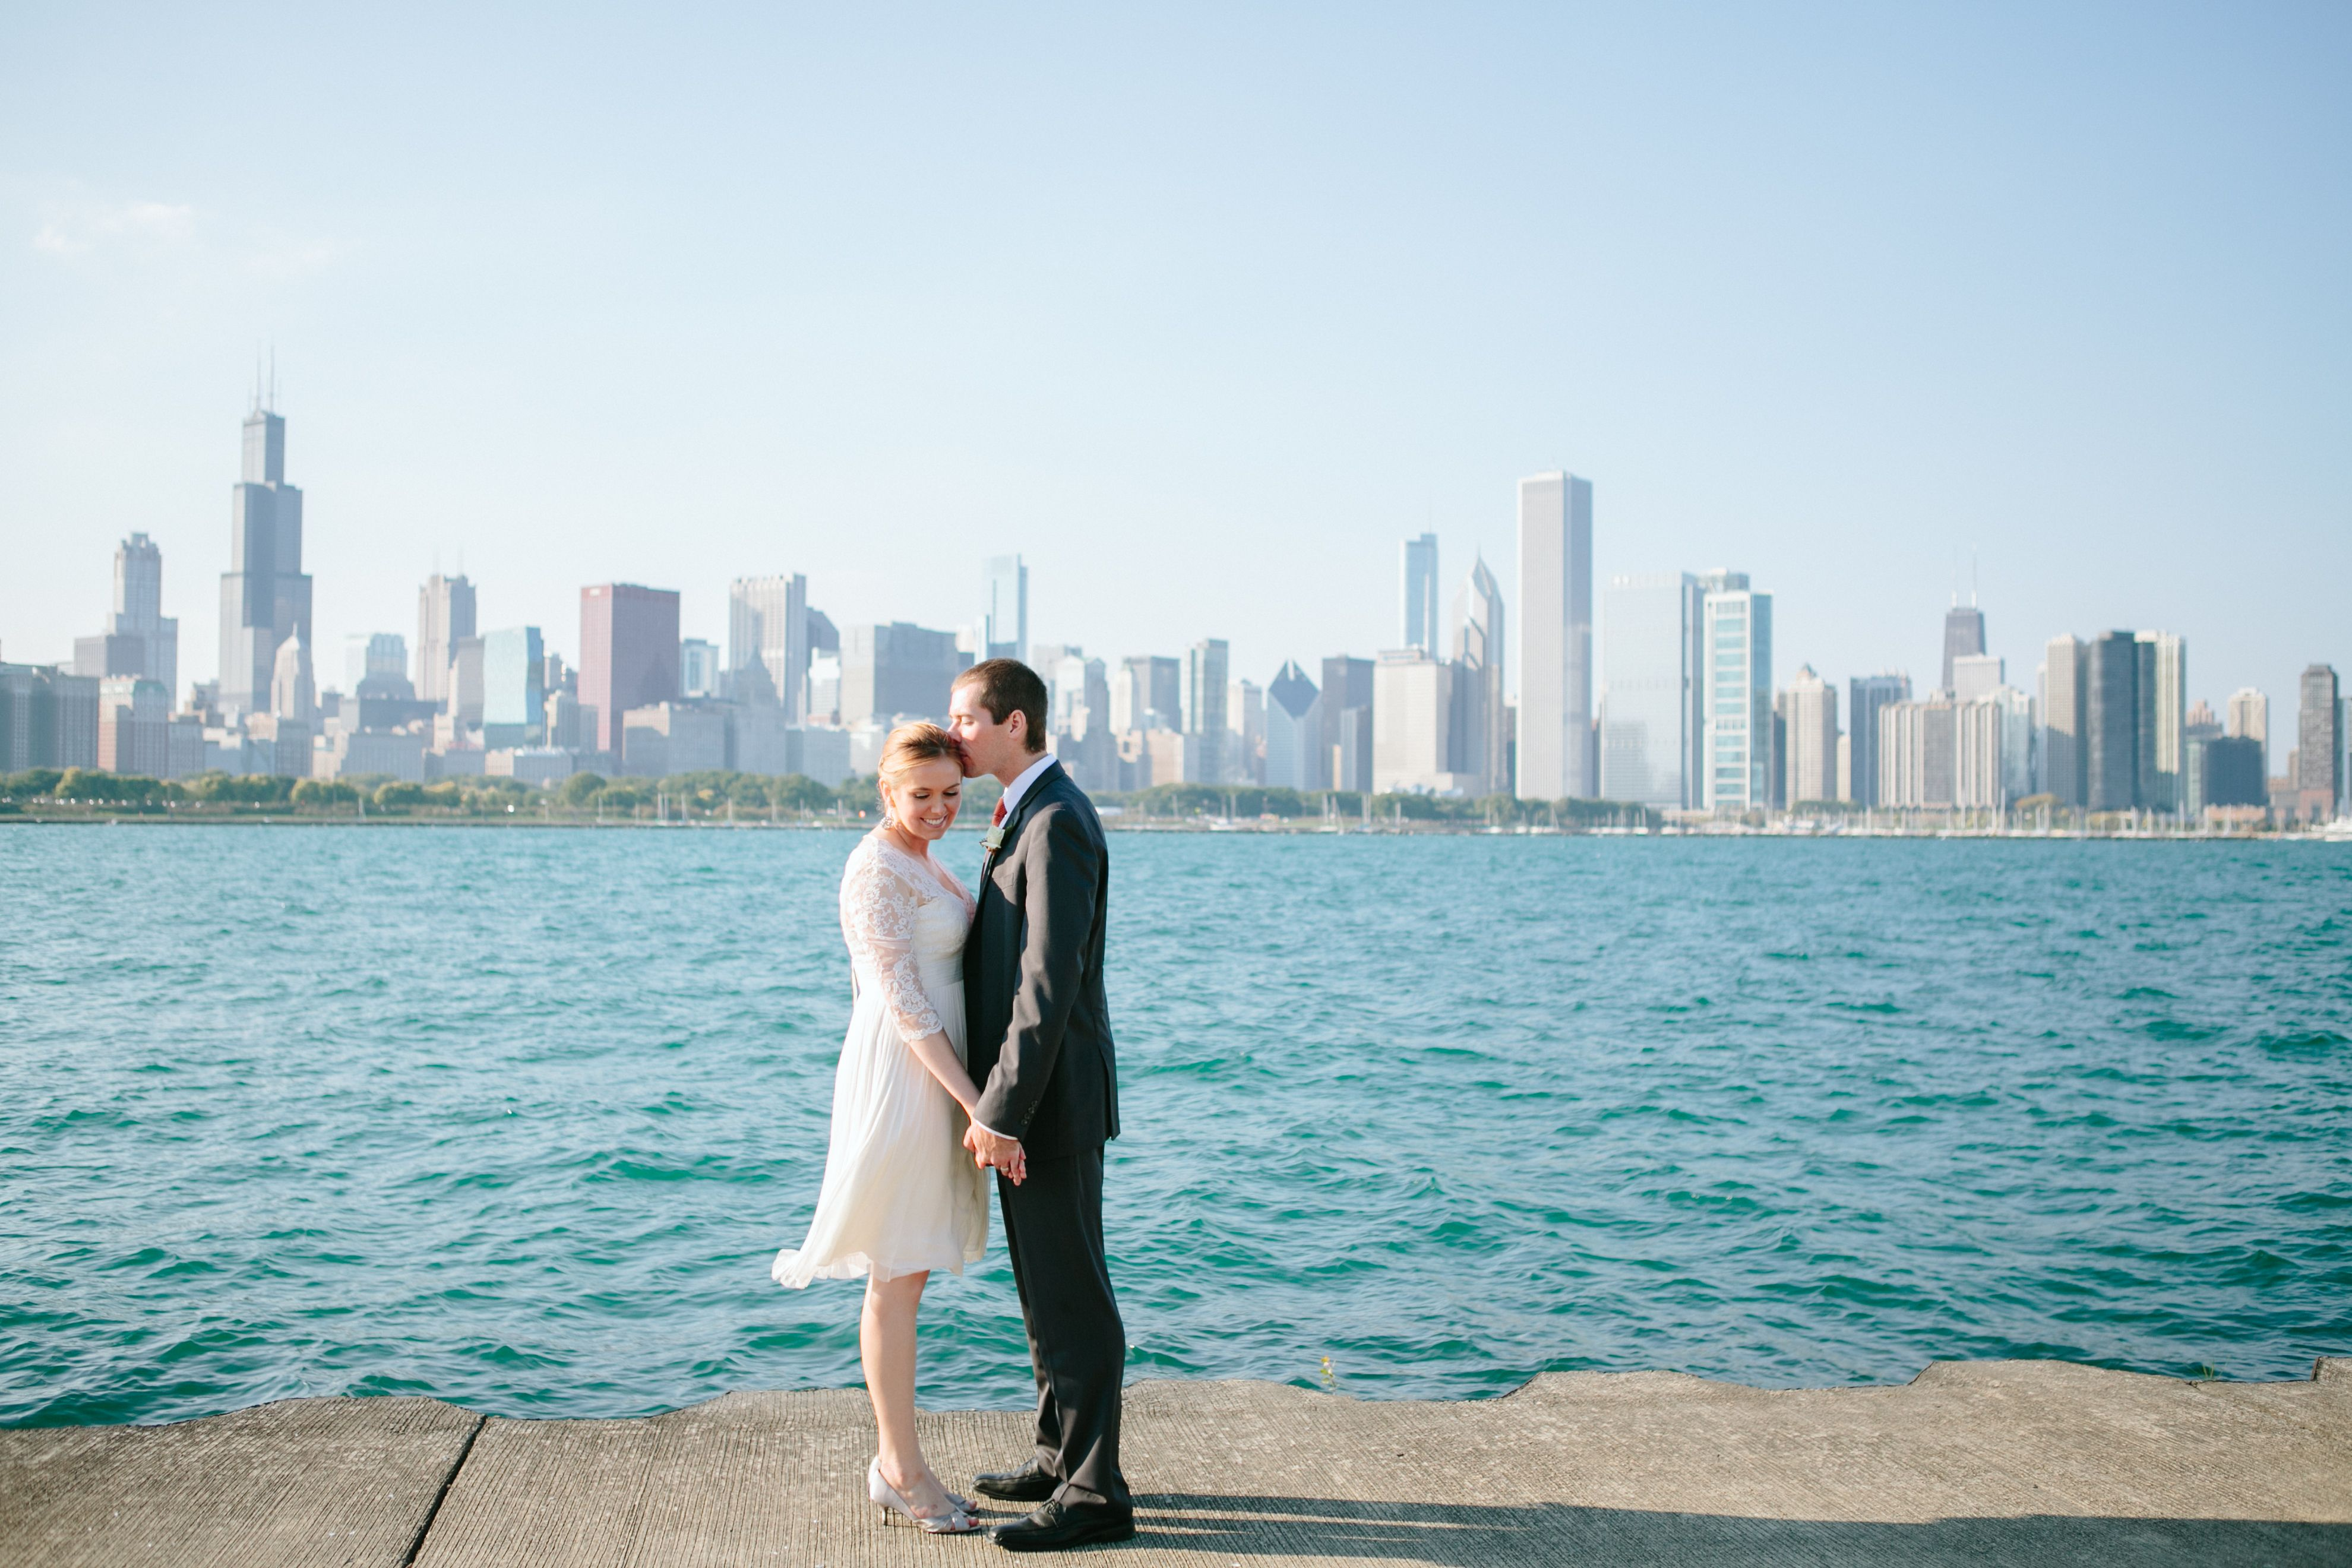 Chicago Elopement Wedding Courthouse Bhldn Dress Www Jacquicole